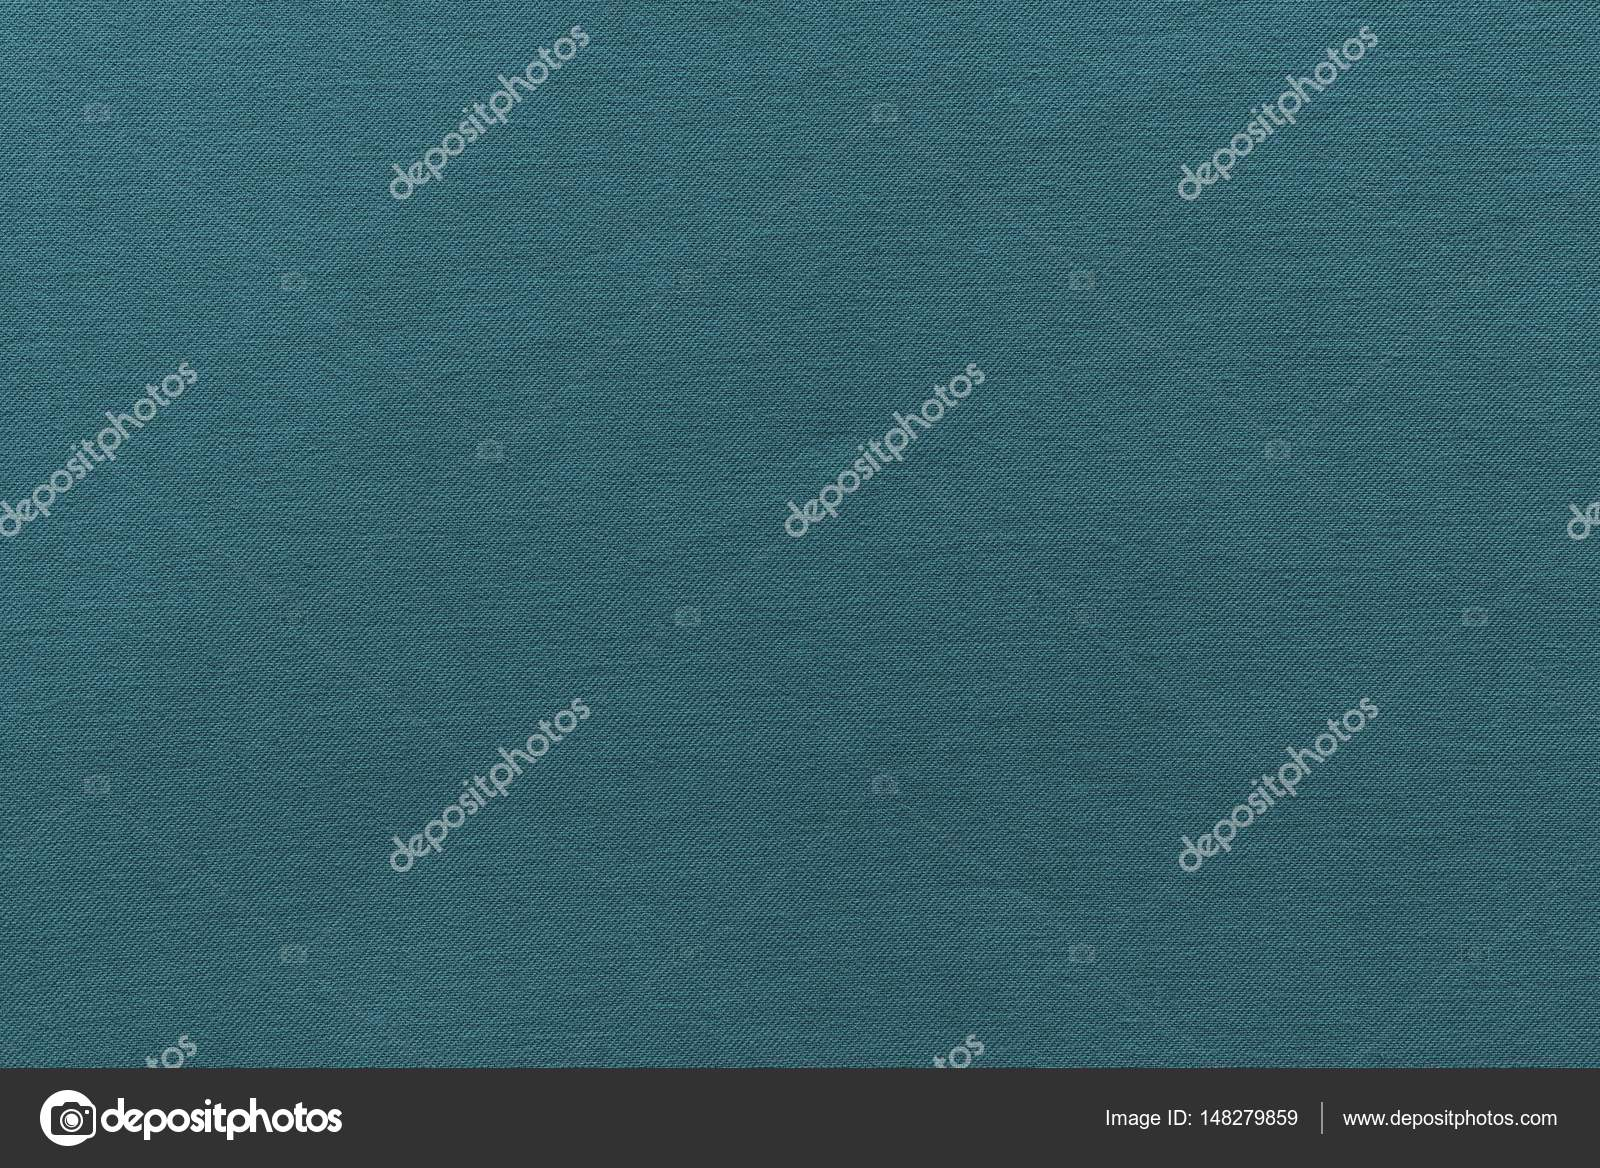 Texture And Background Of Rough Fabric Dark Turquoise Color Stock Photo